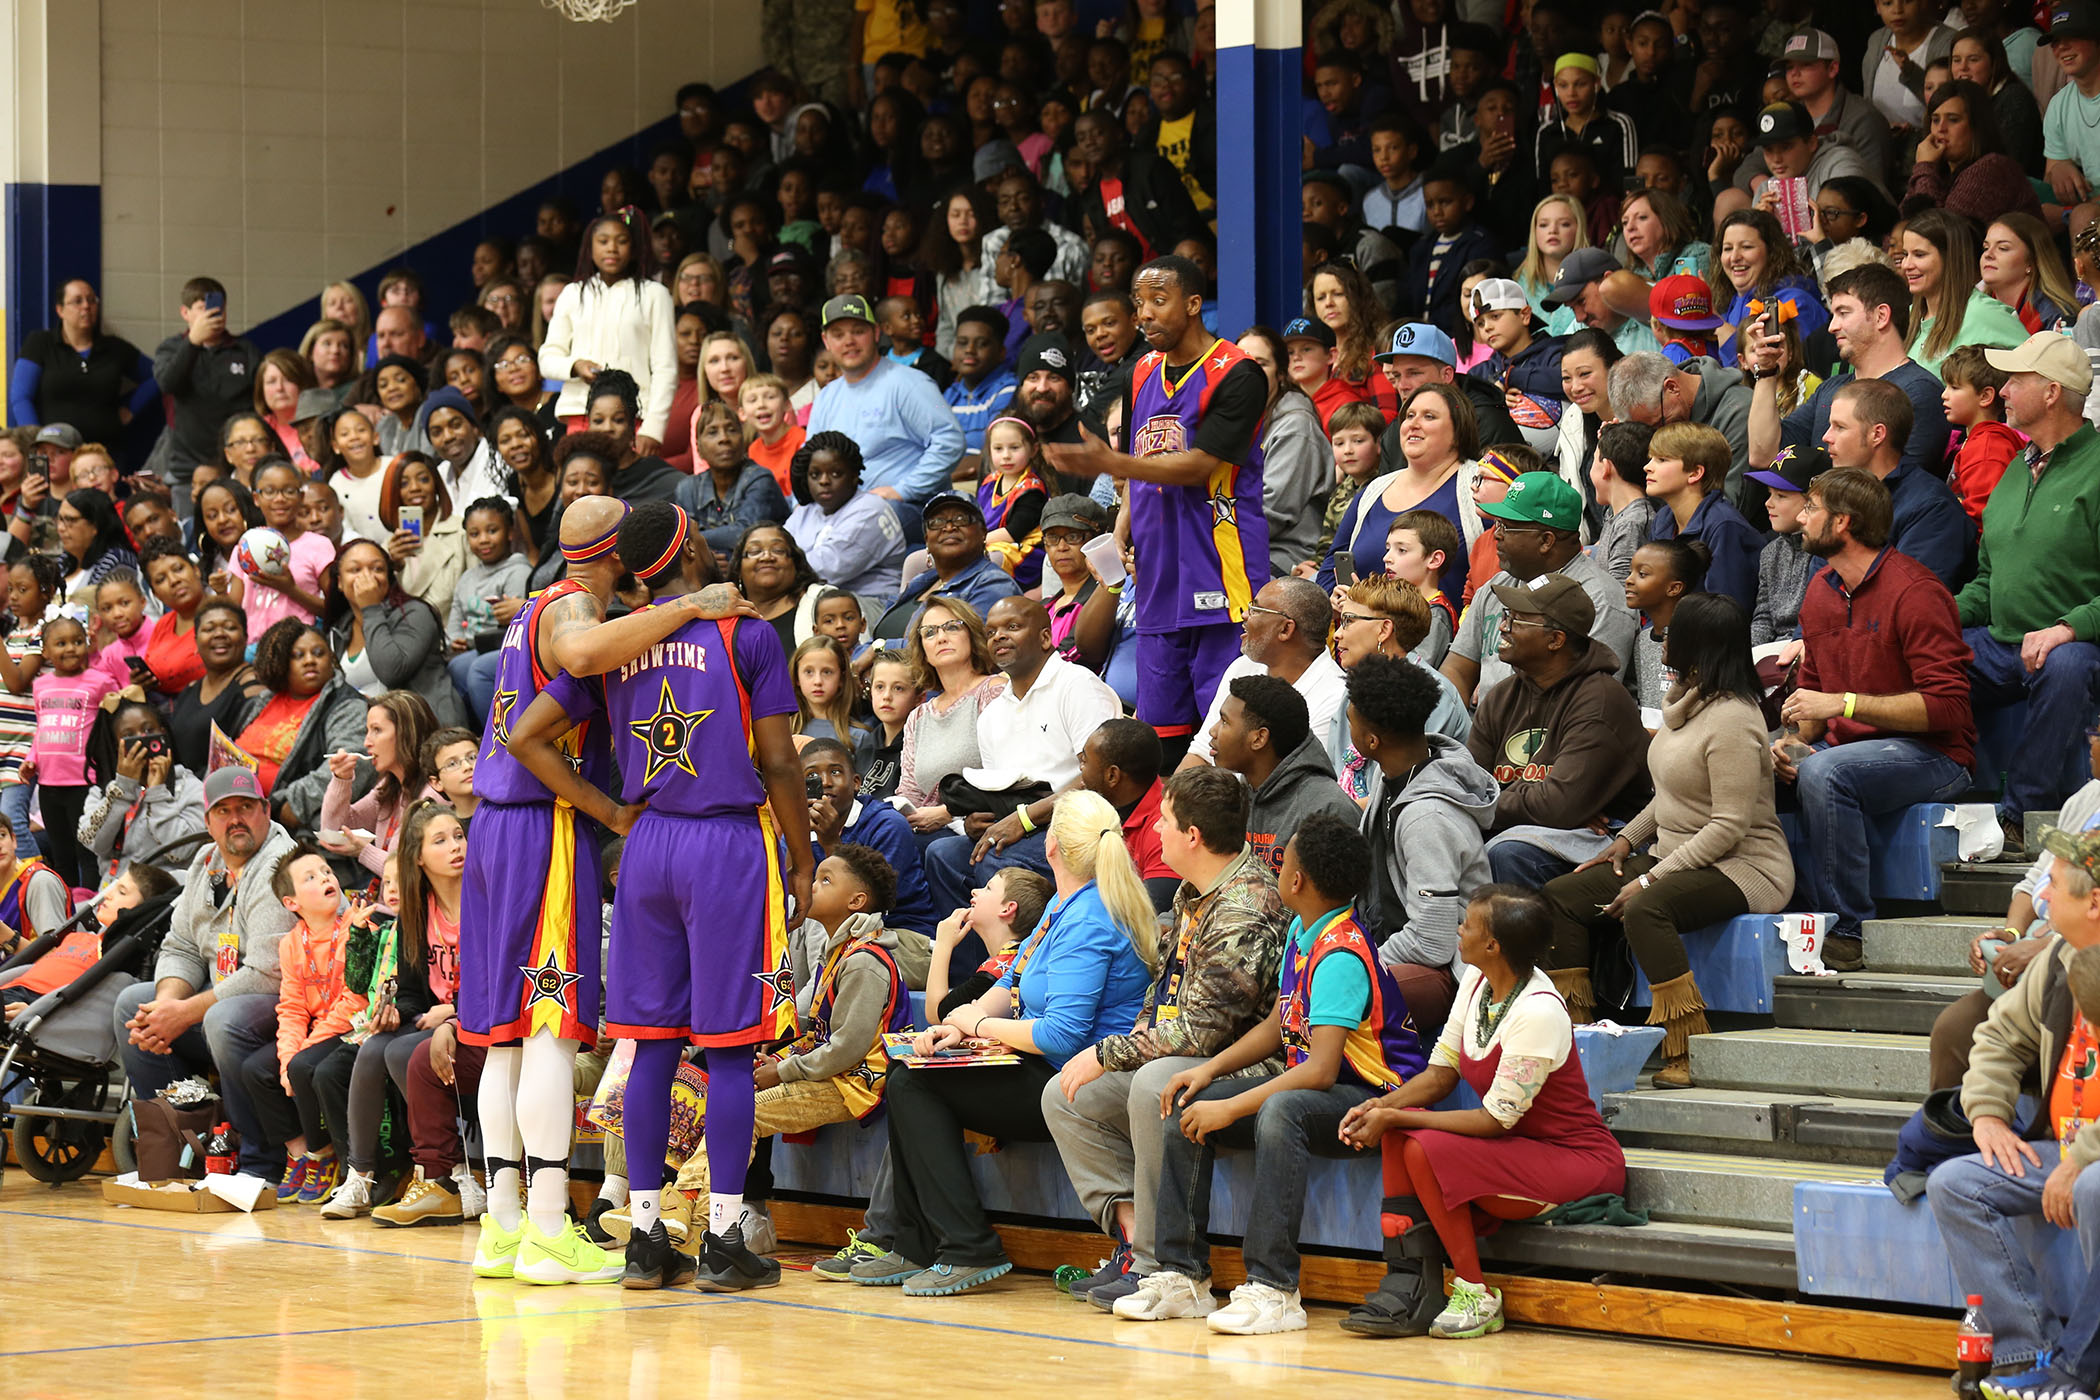 Harlem Wizards perform in Saturday night's game.